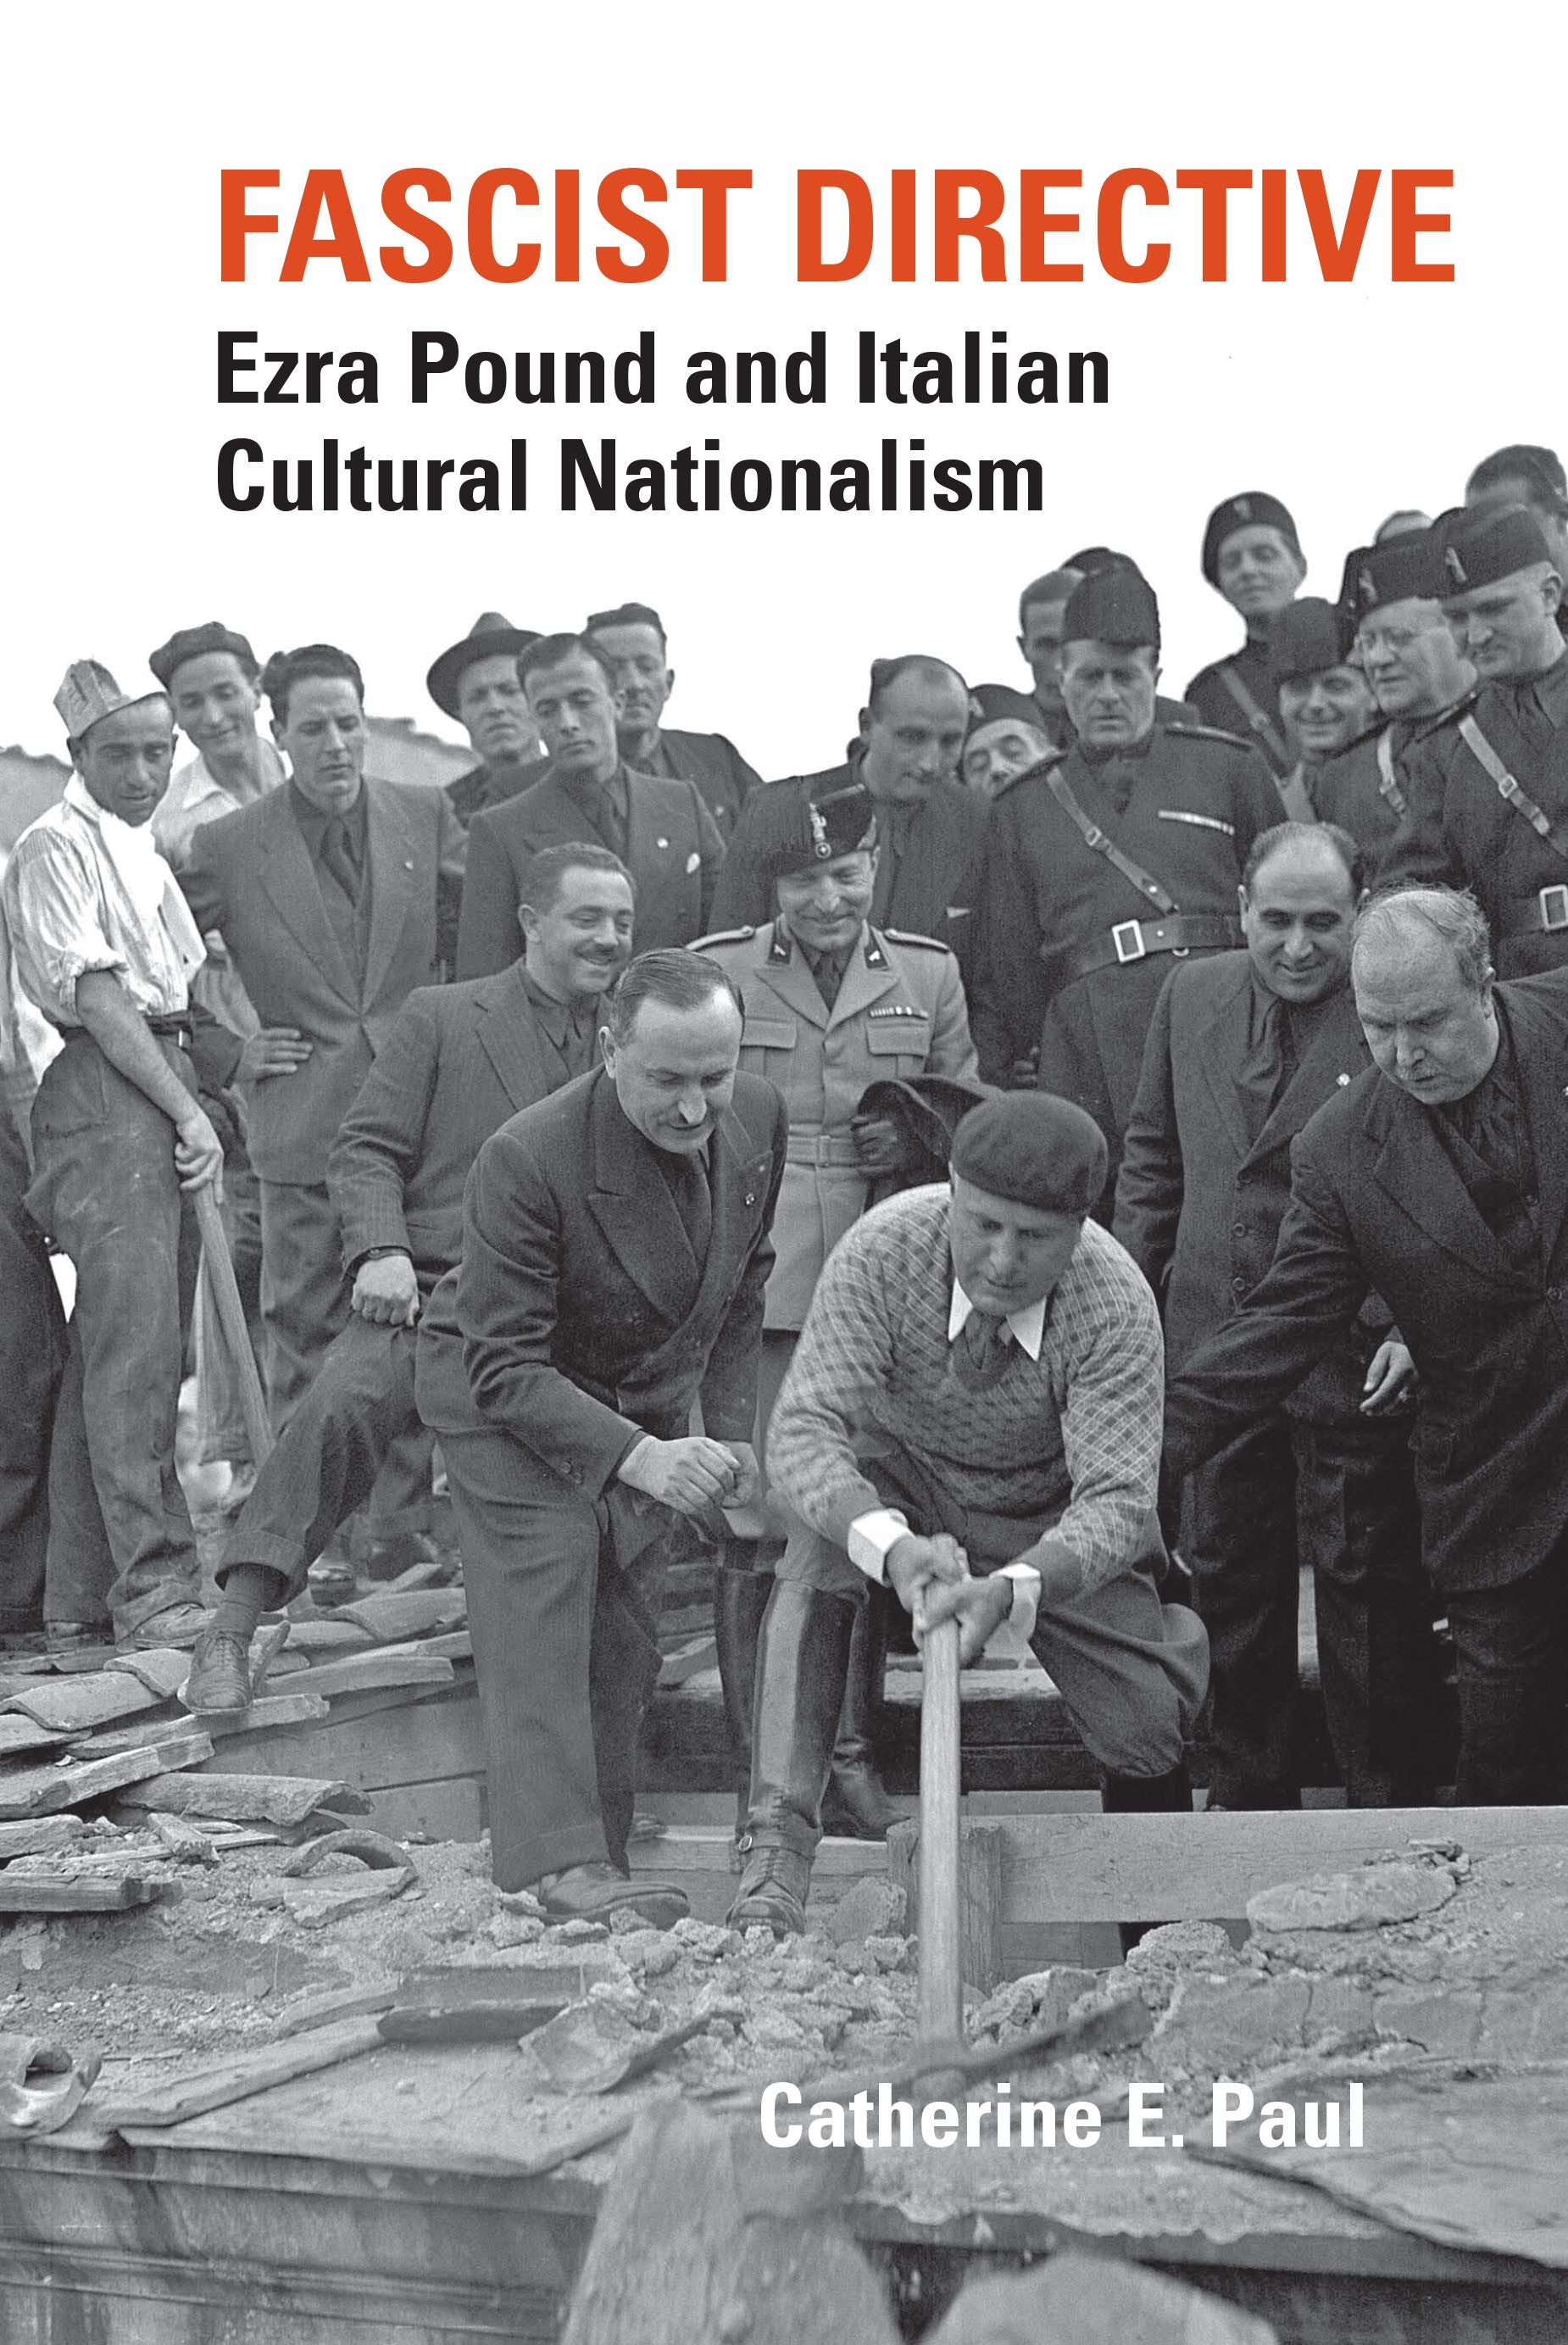 Fascist Directive: Ezra Pound and Italian Cultural Nationalism